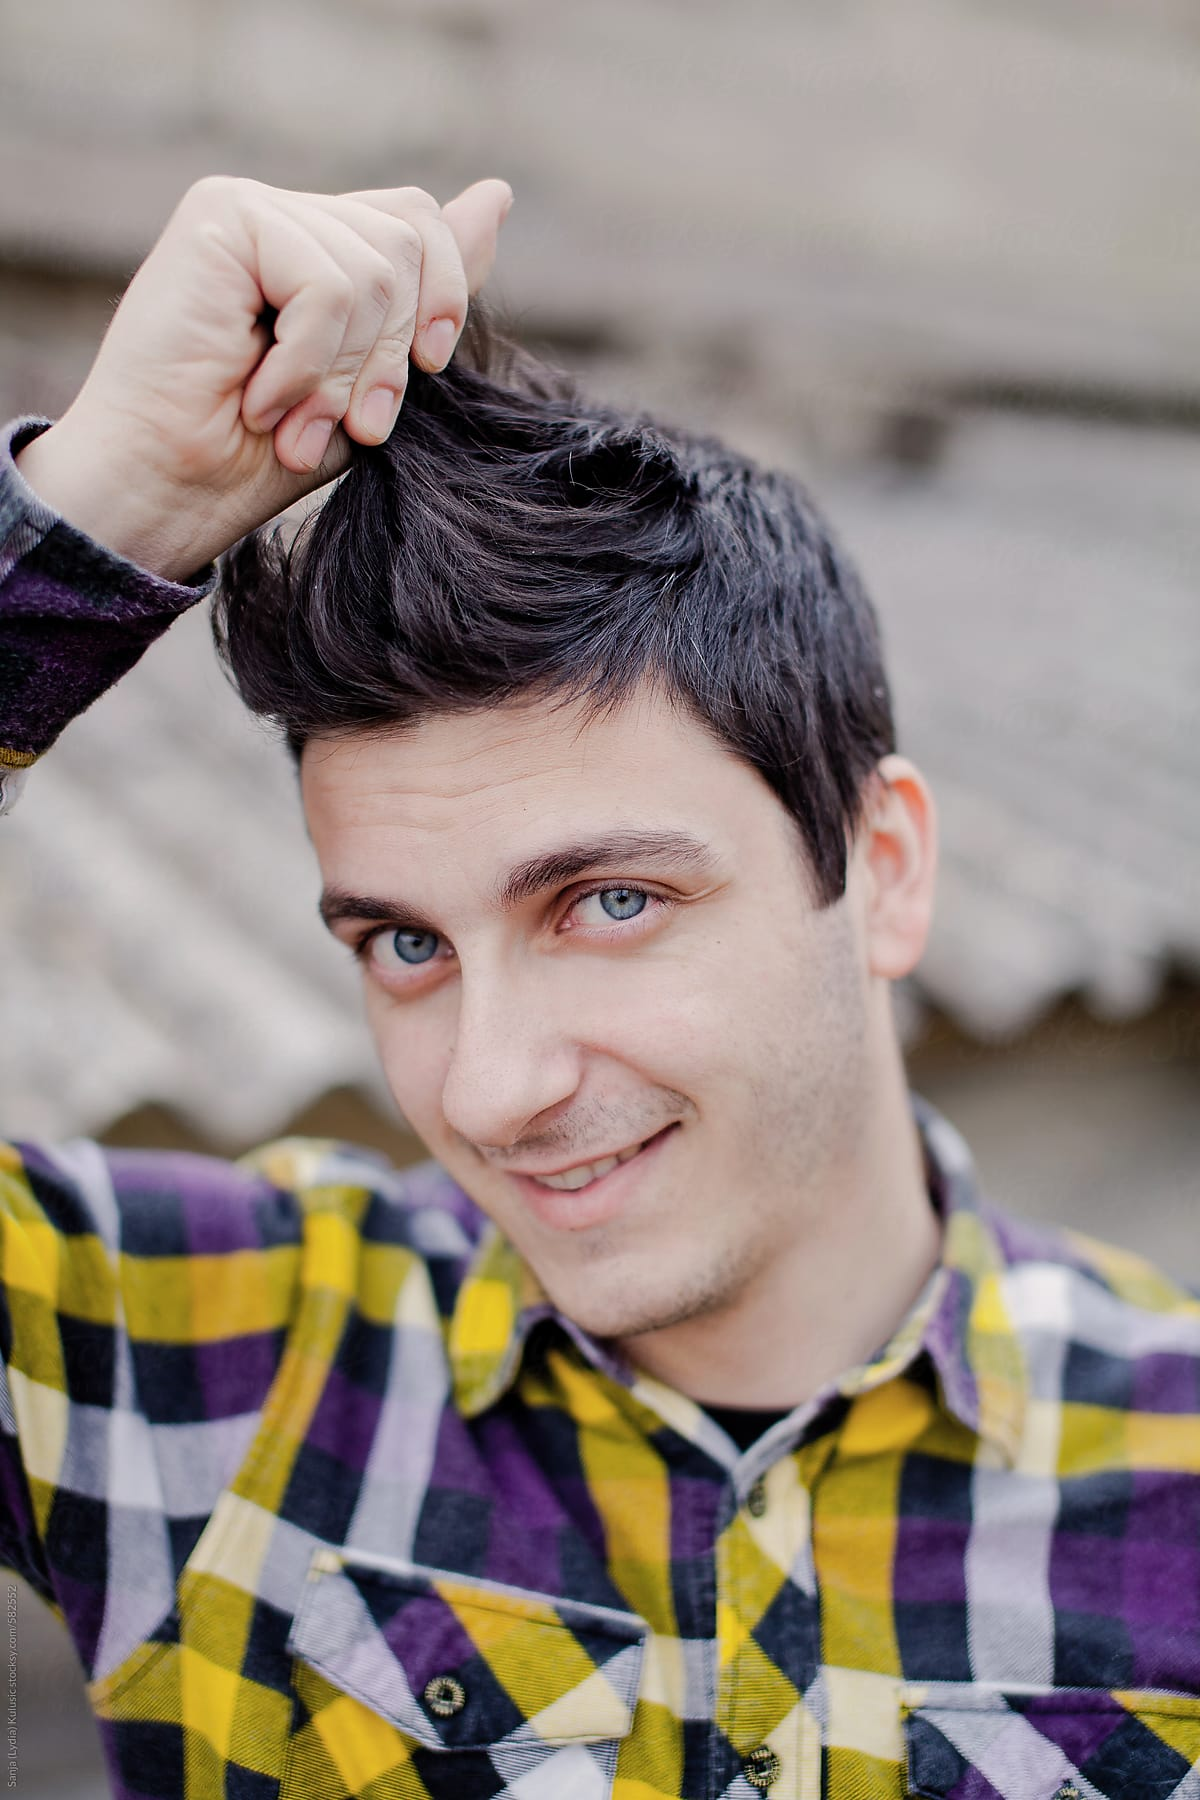 Handsome Guy With Black Hair And Big Blue Eyes And Checkerboard